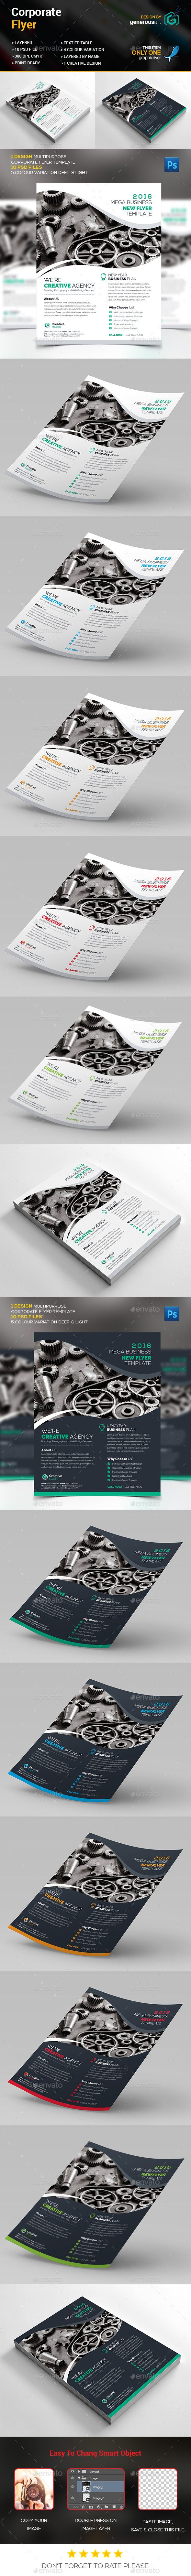 Corporate Flyer Template PSD #design Download: http://graphicriver.net/item/corporate-flyer/14004971?ref=ksioks